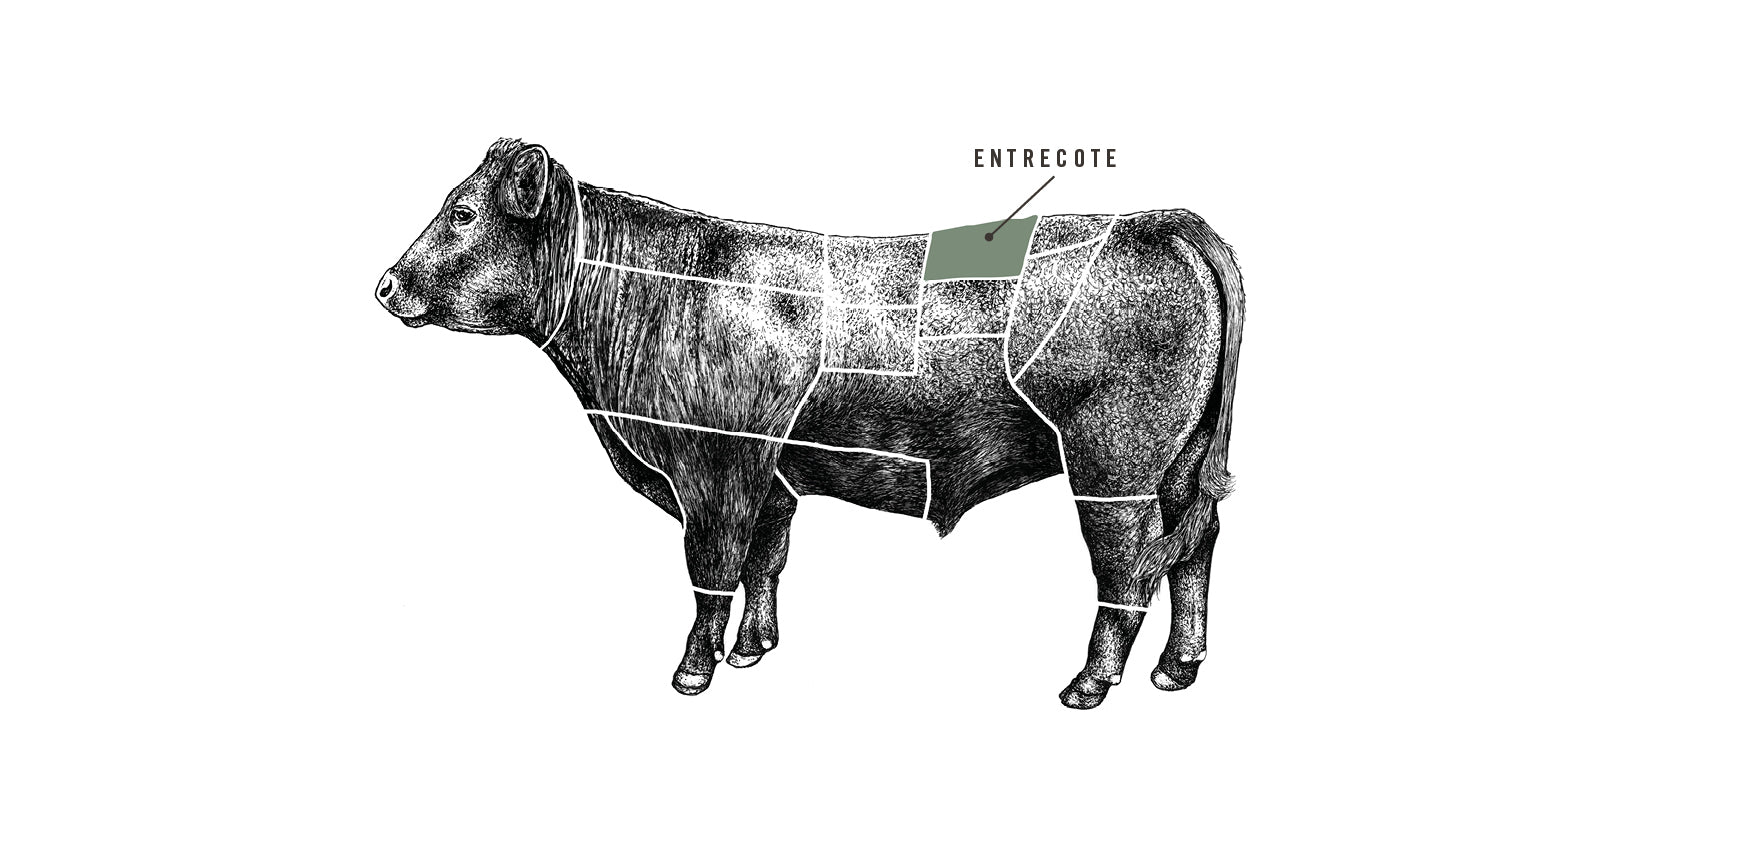 Grass Fed Beef Entrecote Steak meat cuts diagram